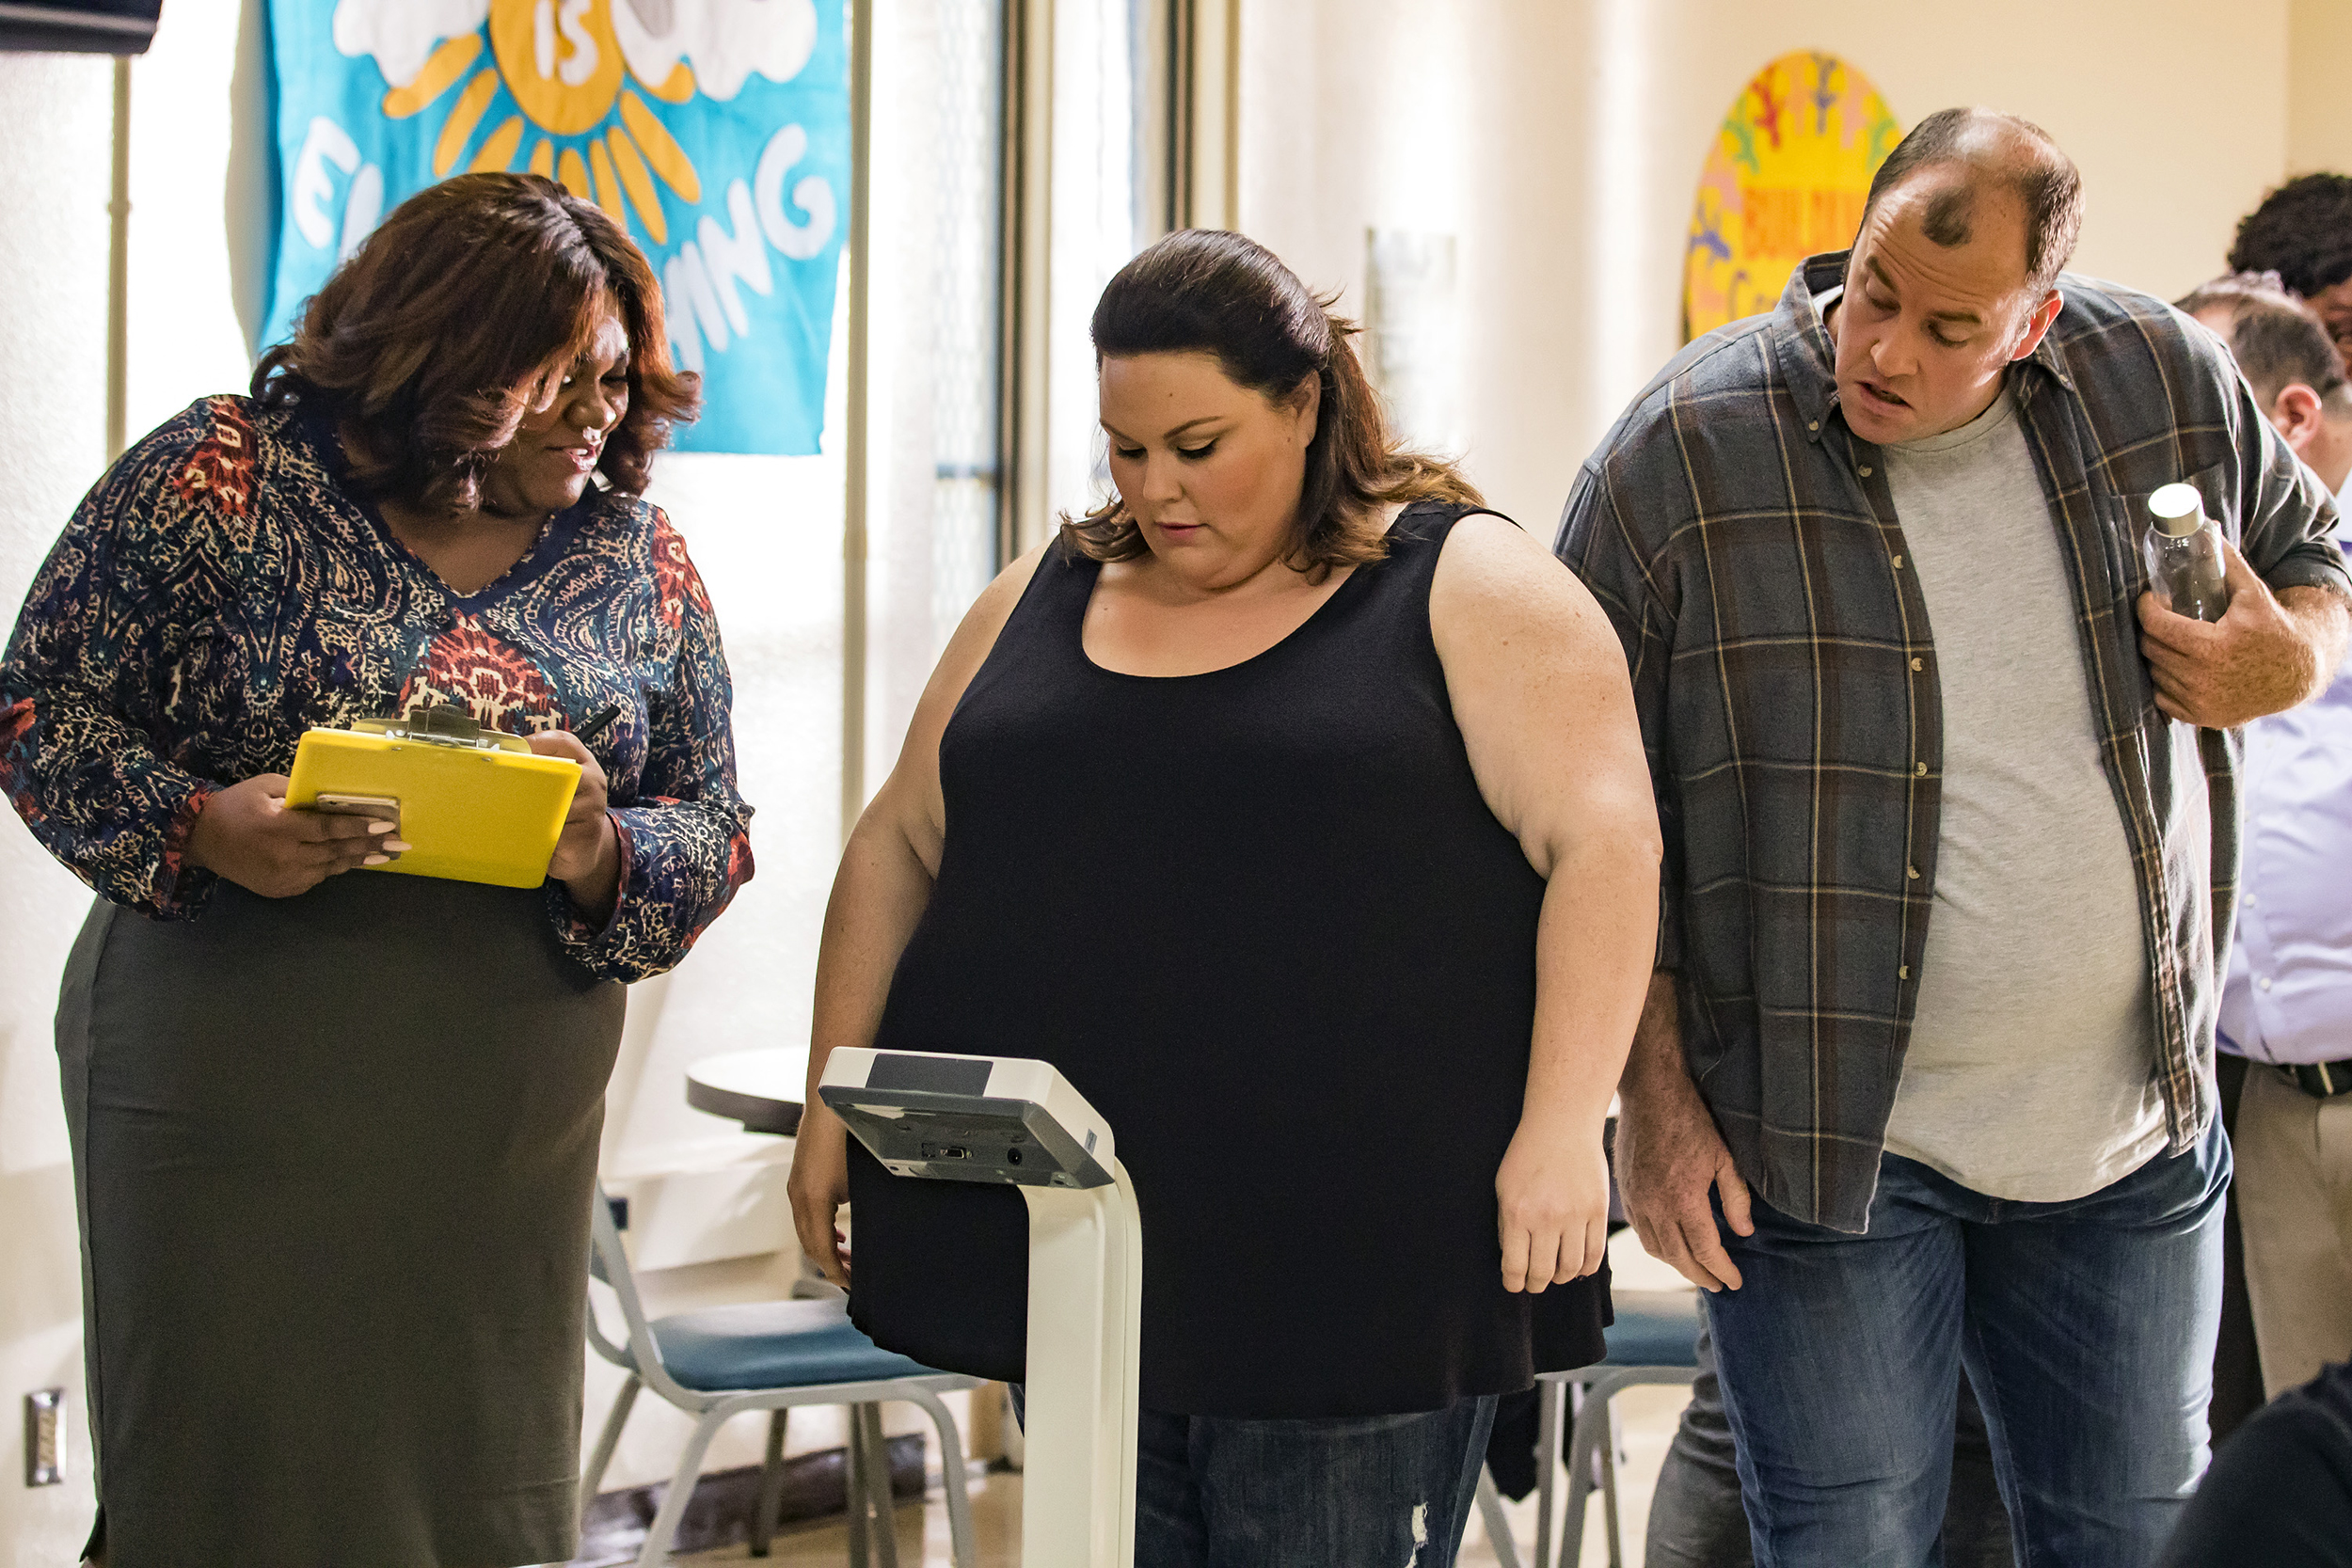 Image: Chrissy Metz as Kate and Chris Sullivan as Toby in